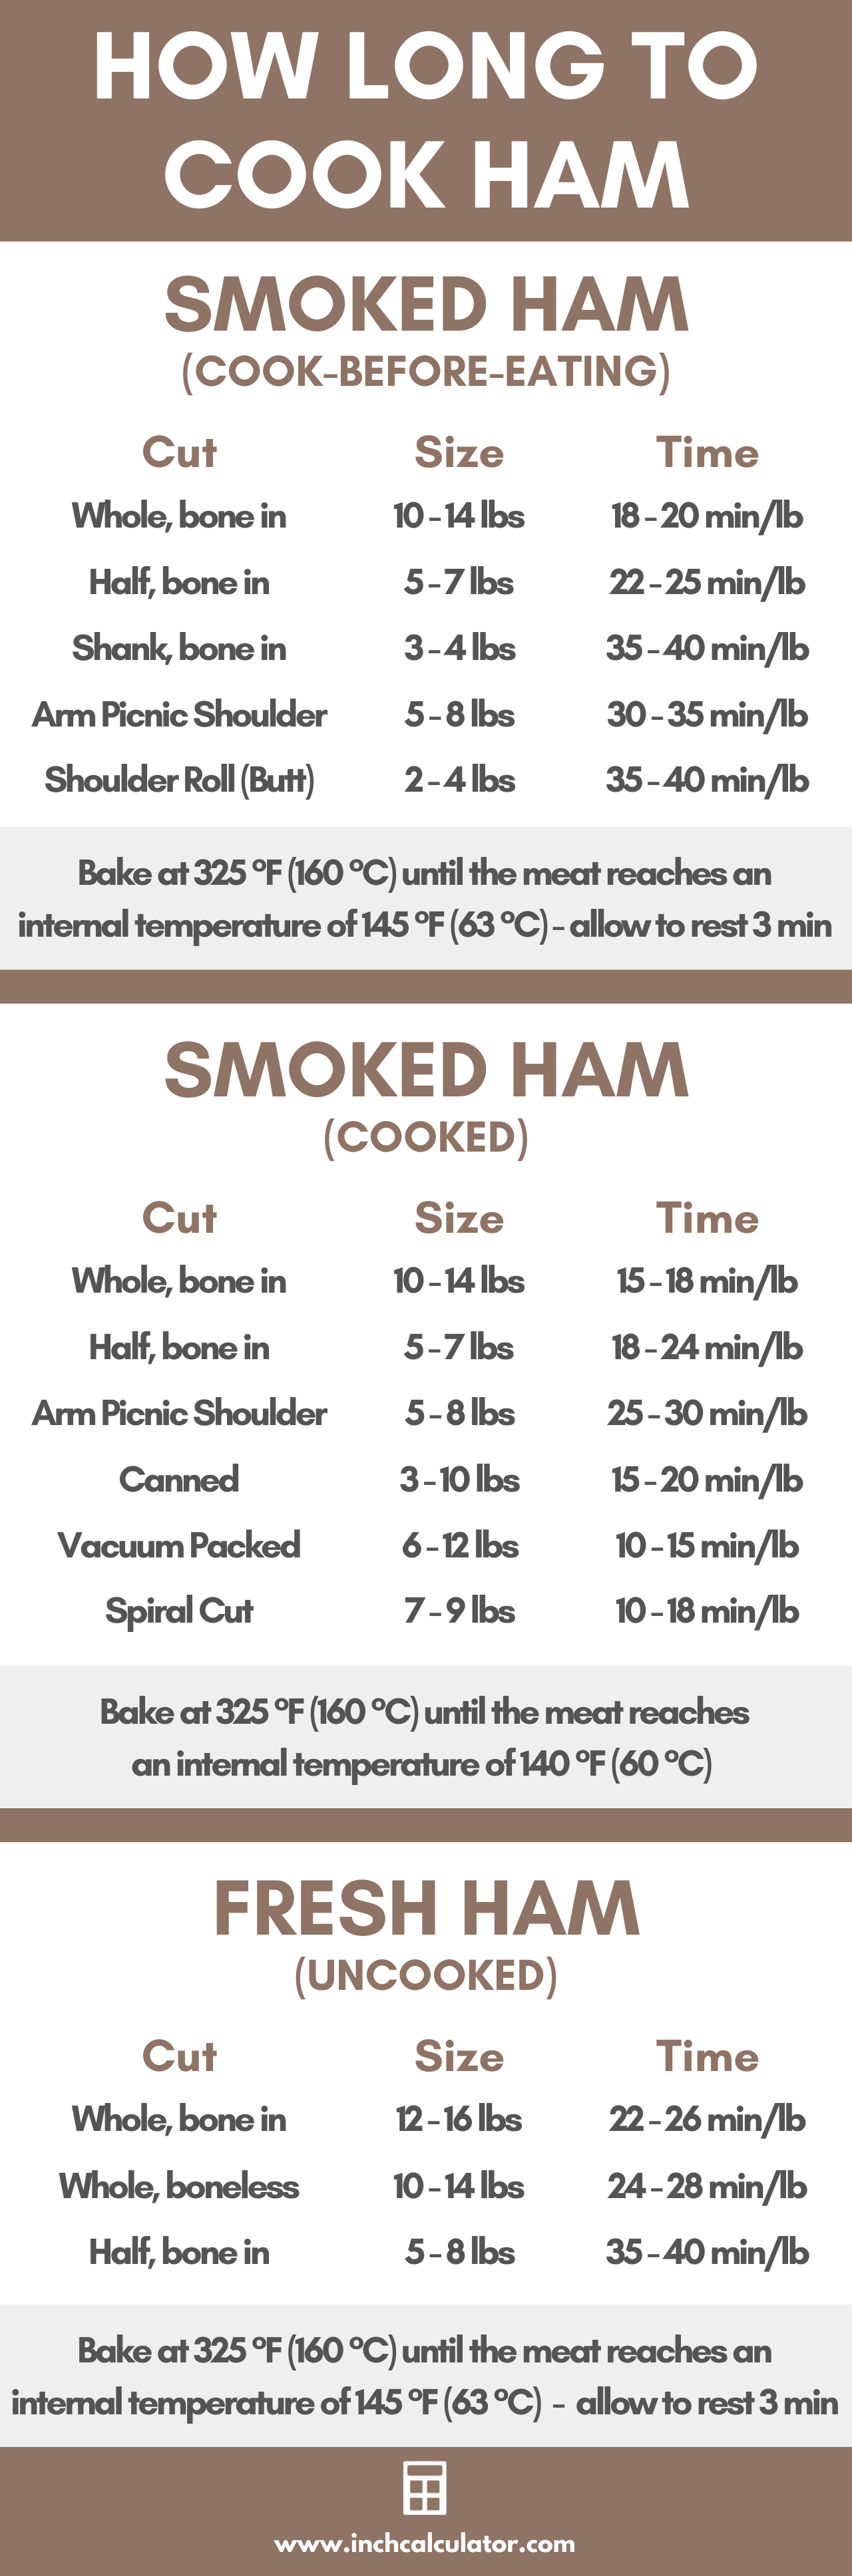 Chart of cooking times for various cuts of ham, per the USDA